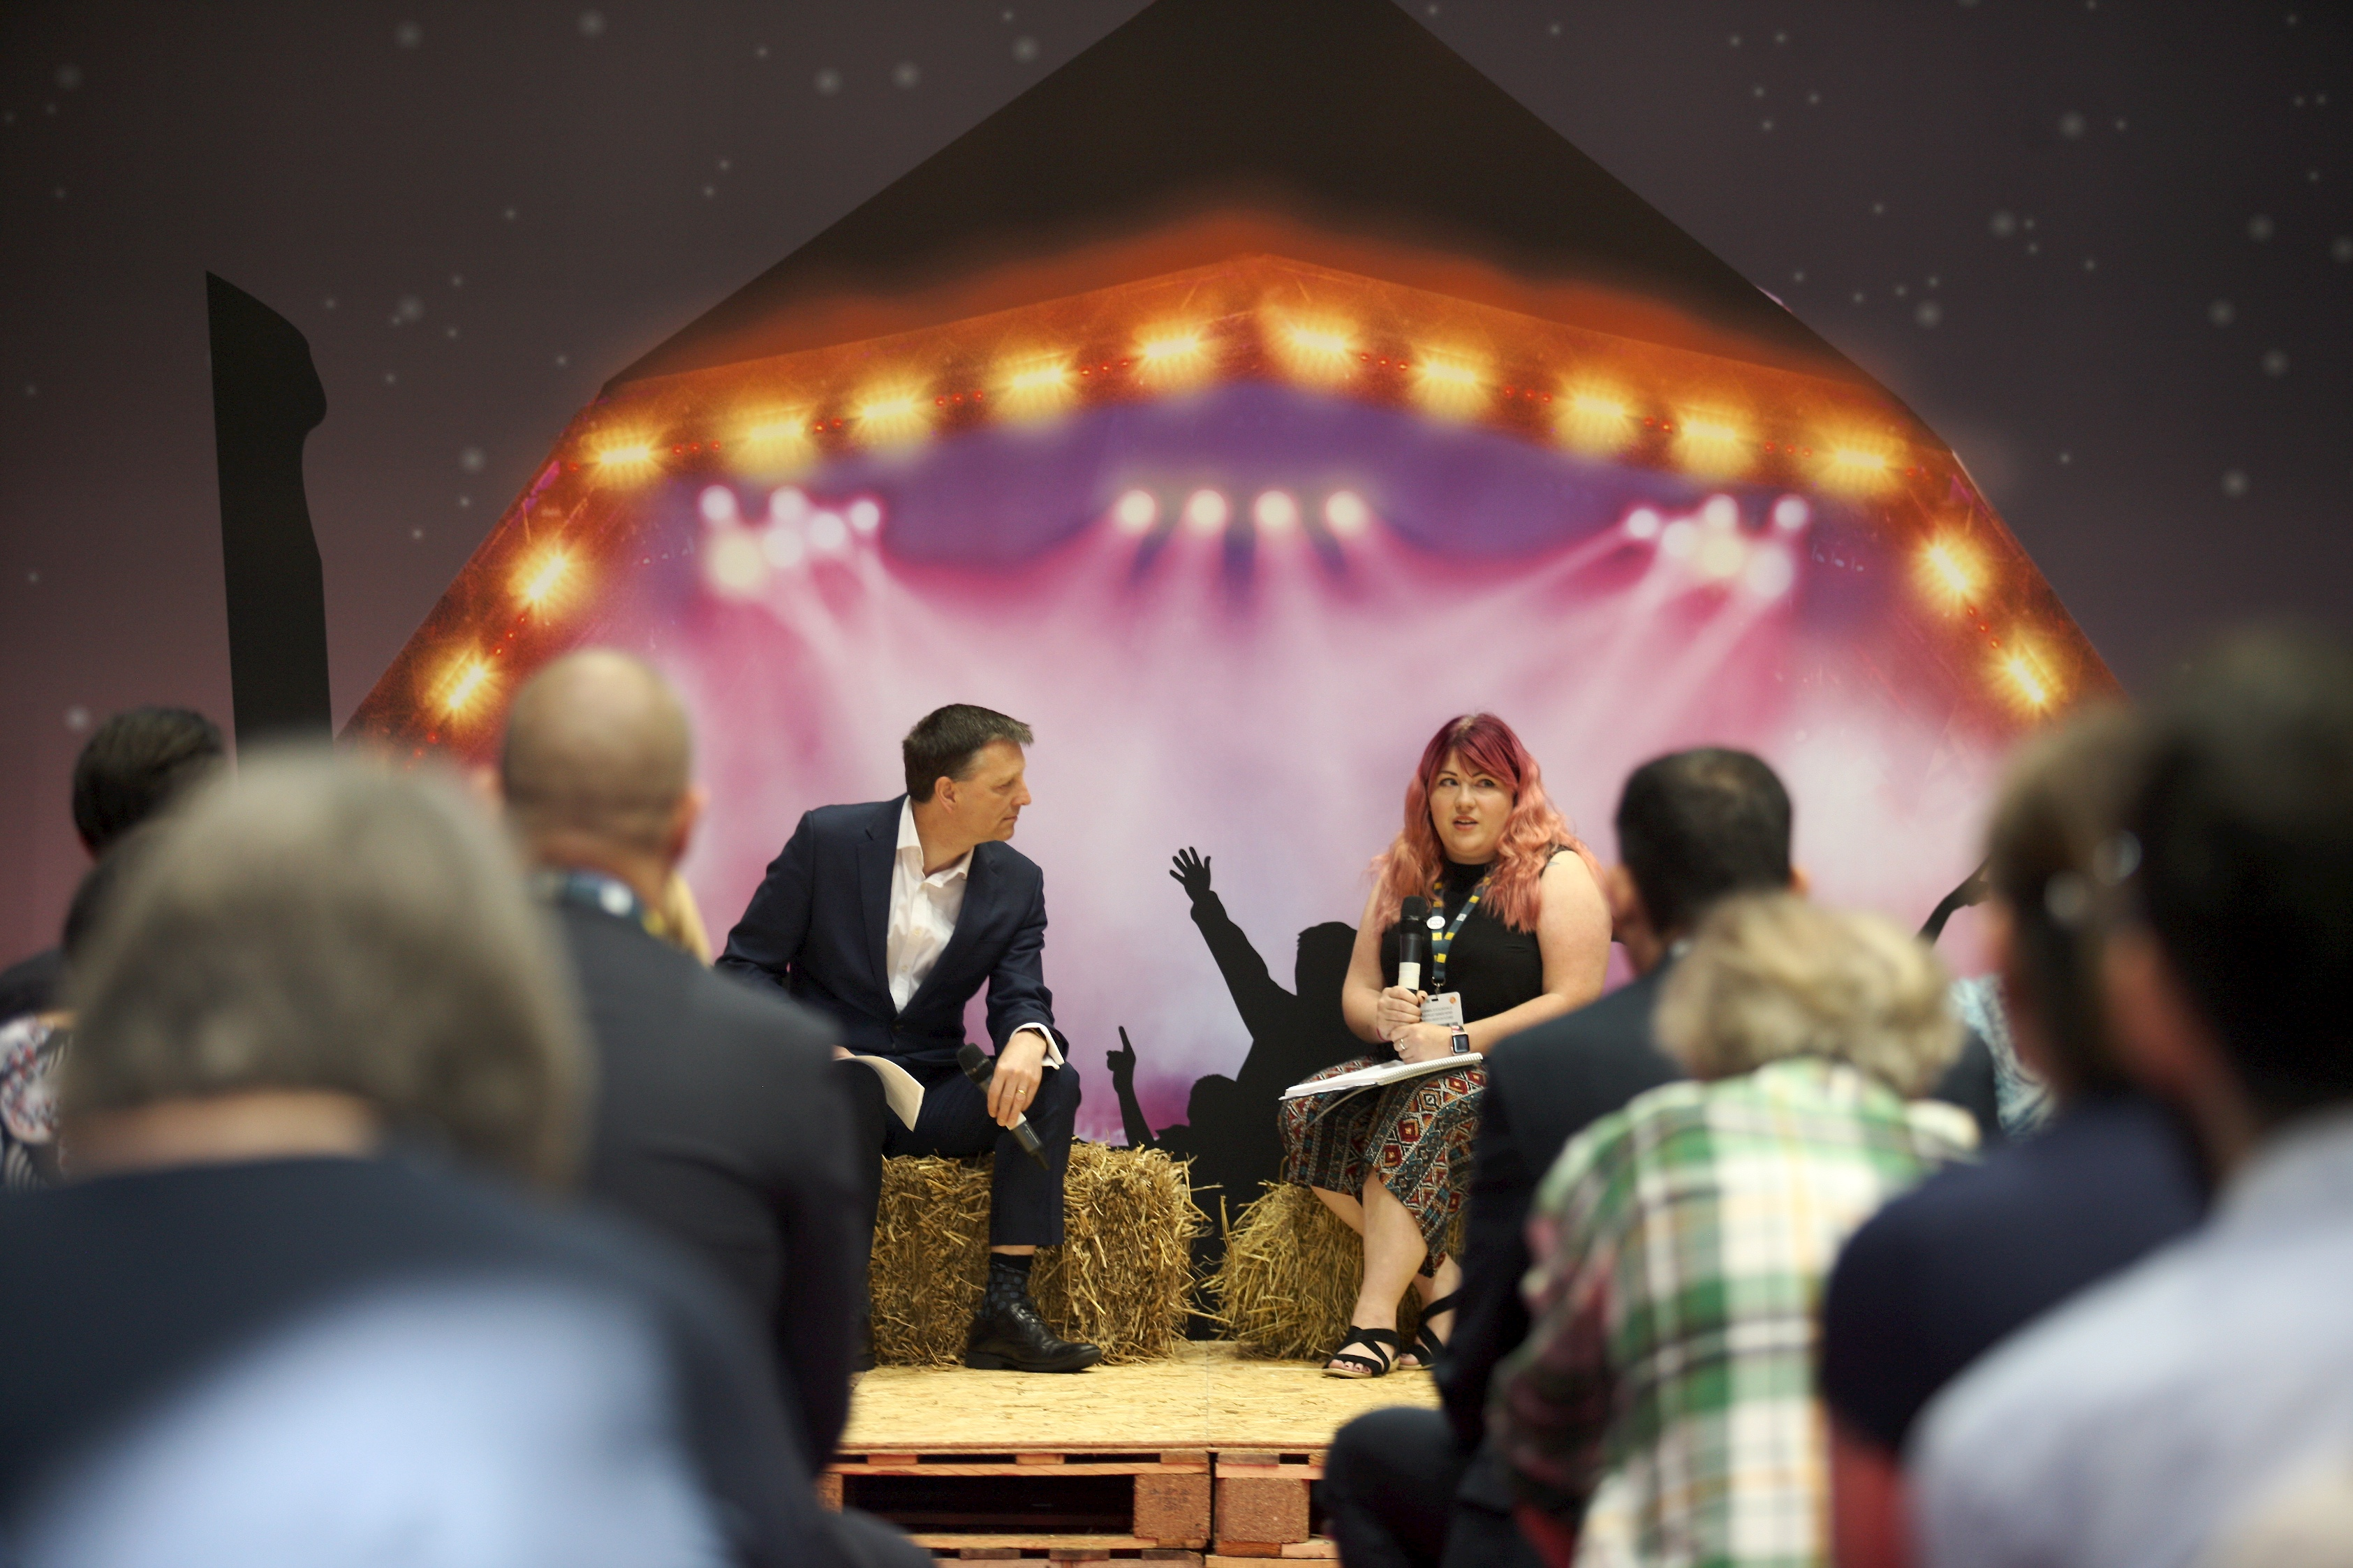 Curated content for Delegates of the Future at Housing 2019